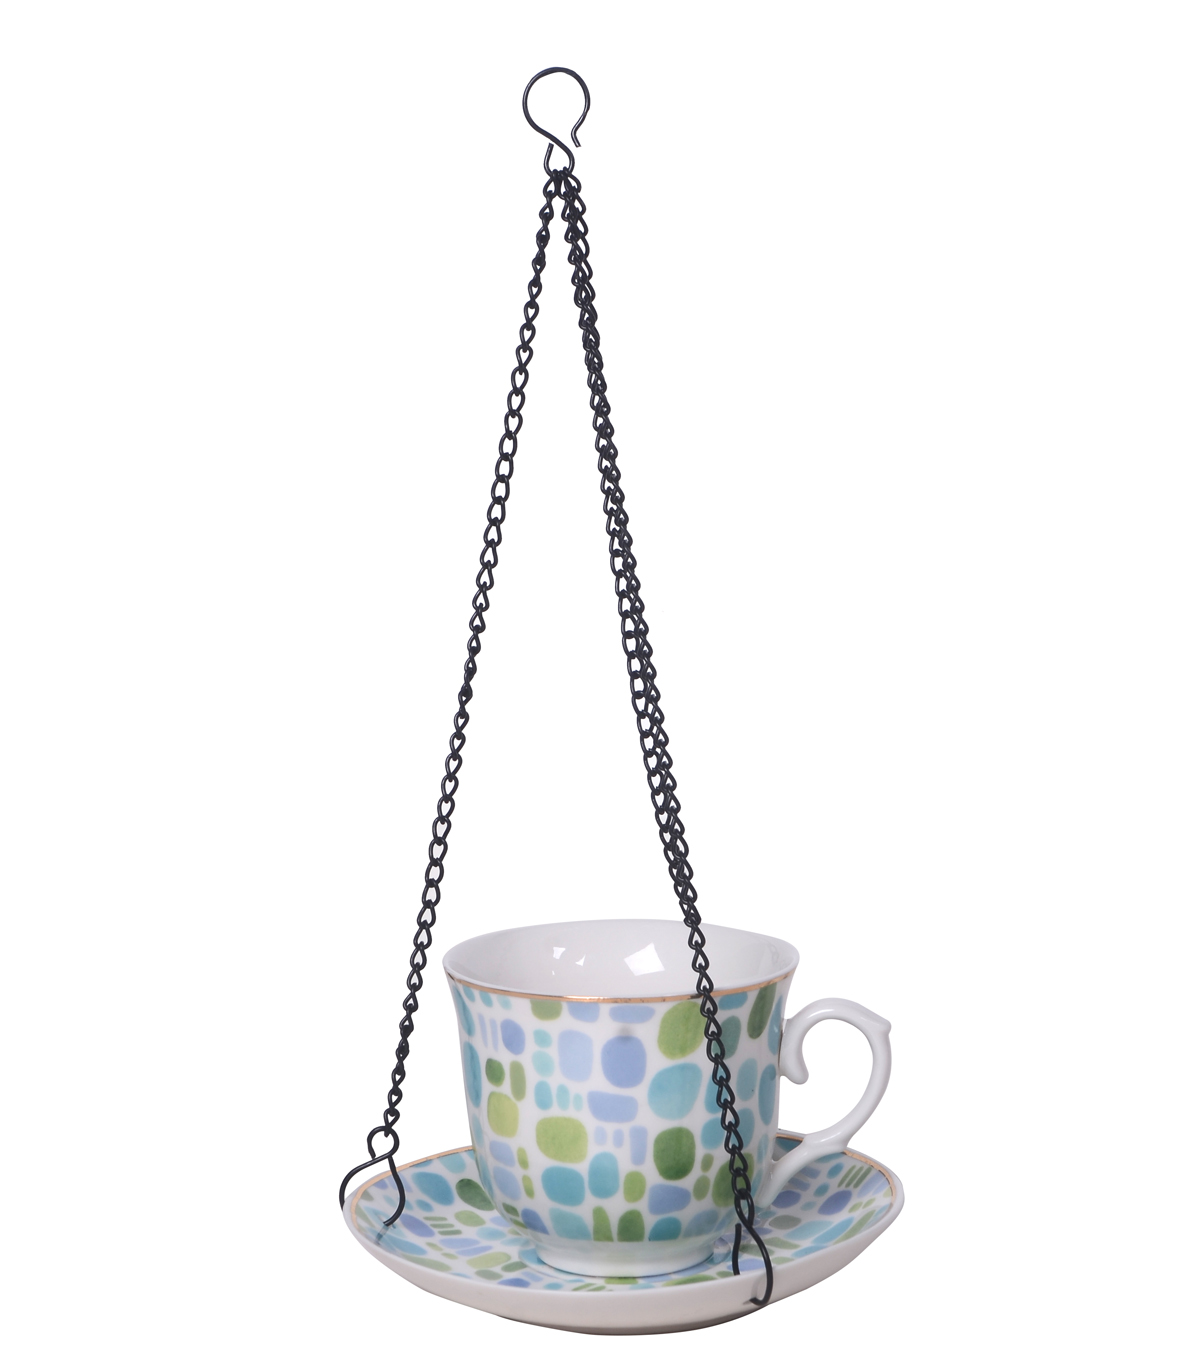 Hello Spring Gardening Porcelain Upright Teacup Bird Feeder-Geometric